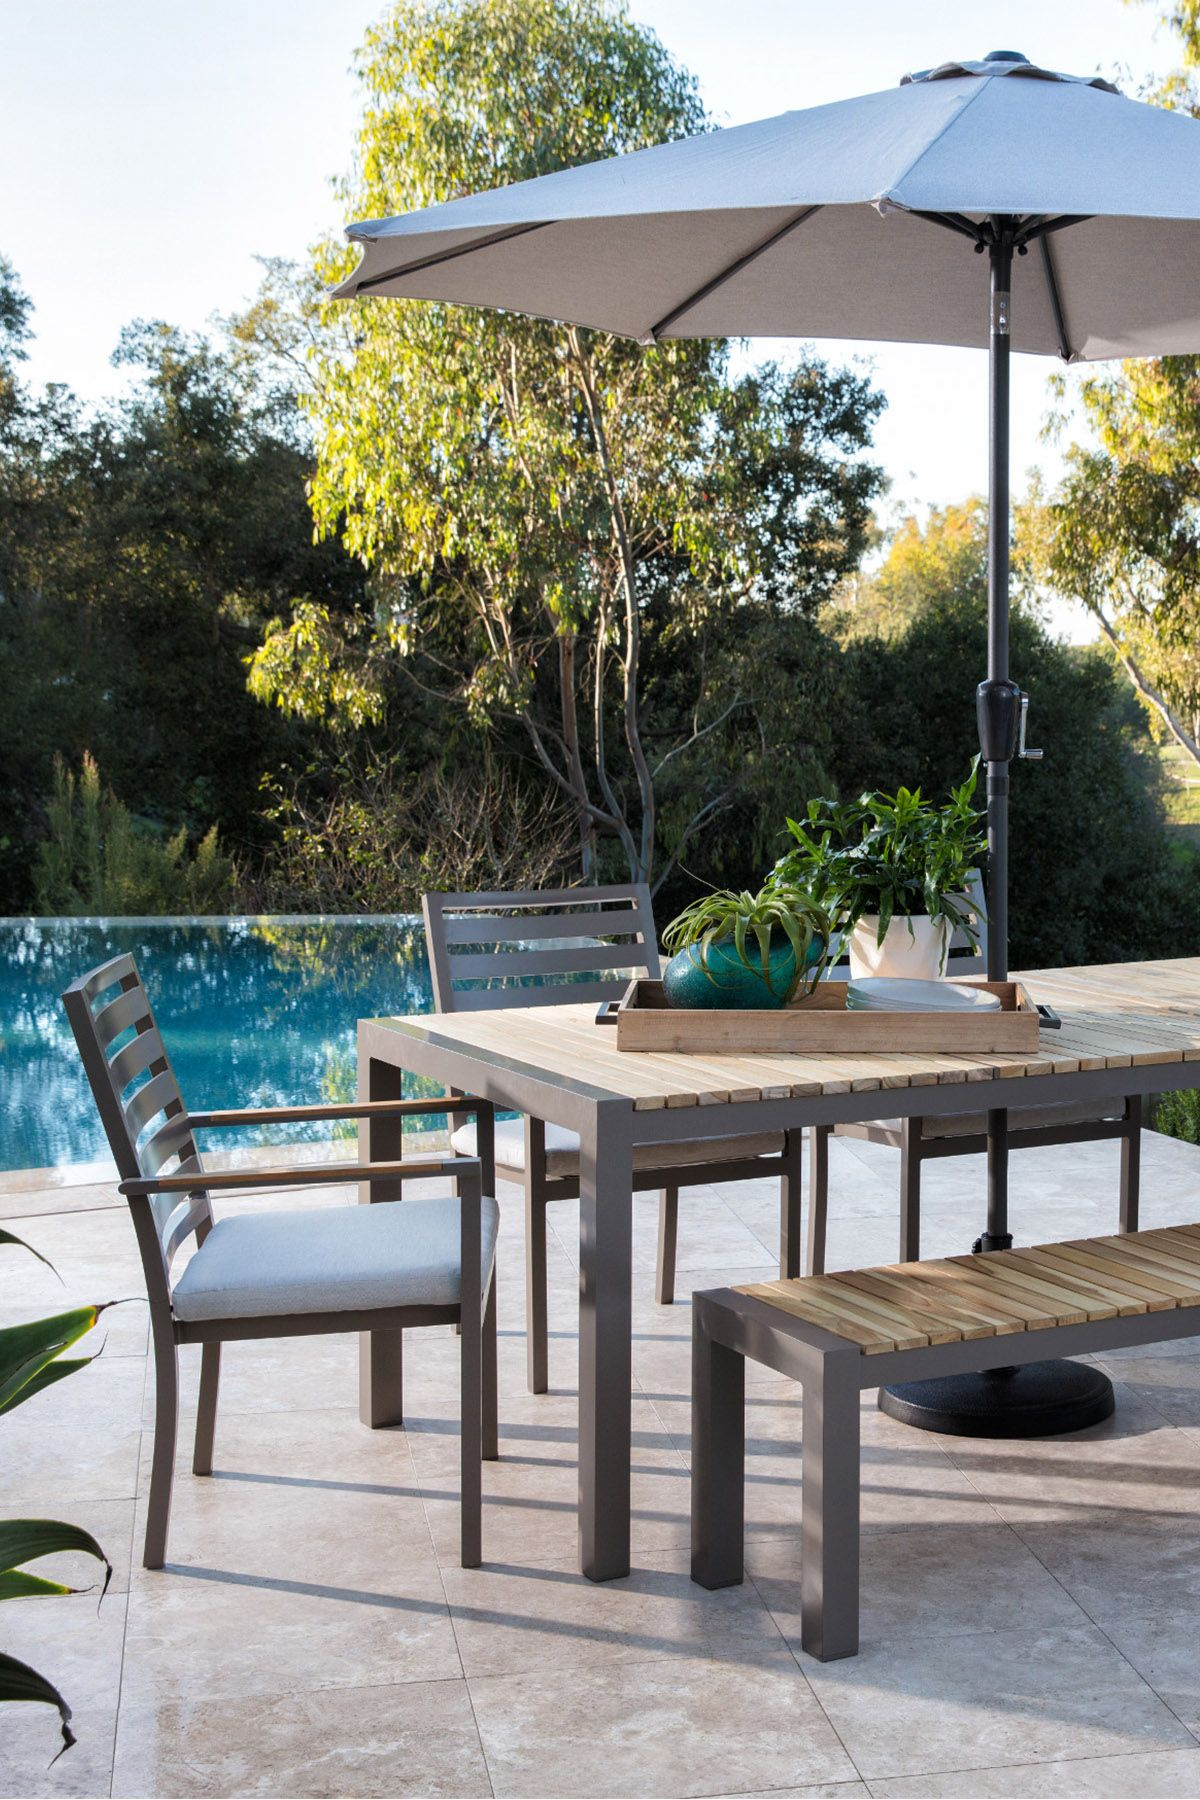 Outdoor Brasilia Teak Dining Table With 4 Chairs And 1 Bench In 2018 Throughout Outdoor Koro Swivel Chairs (View 18 of 20)